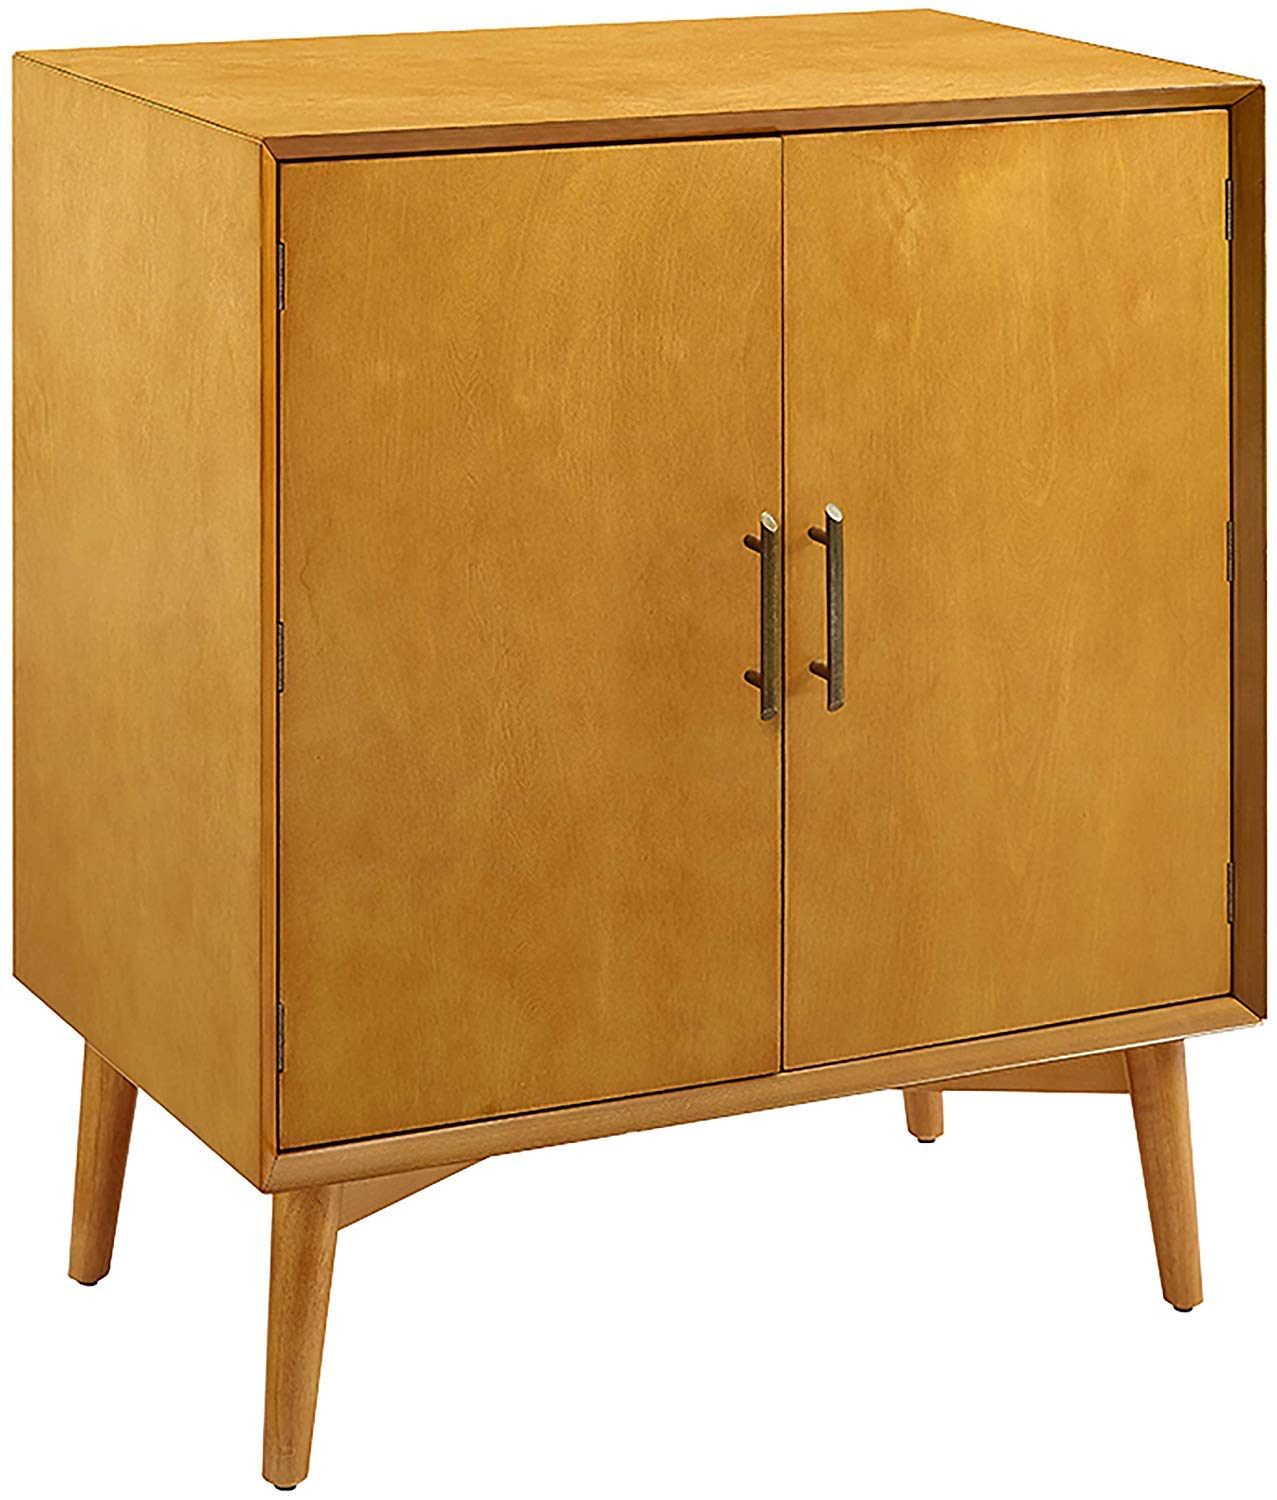 Crosley Furniture Landon Mid-Century Modern Bar Cabinet, Acorn by Crosley Furniture